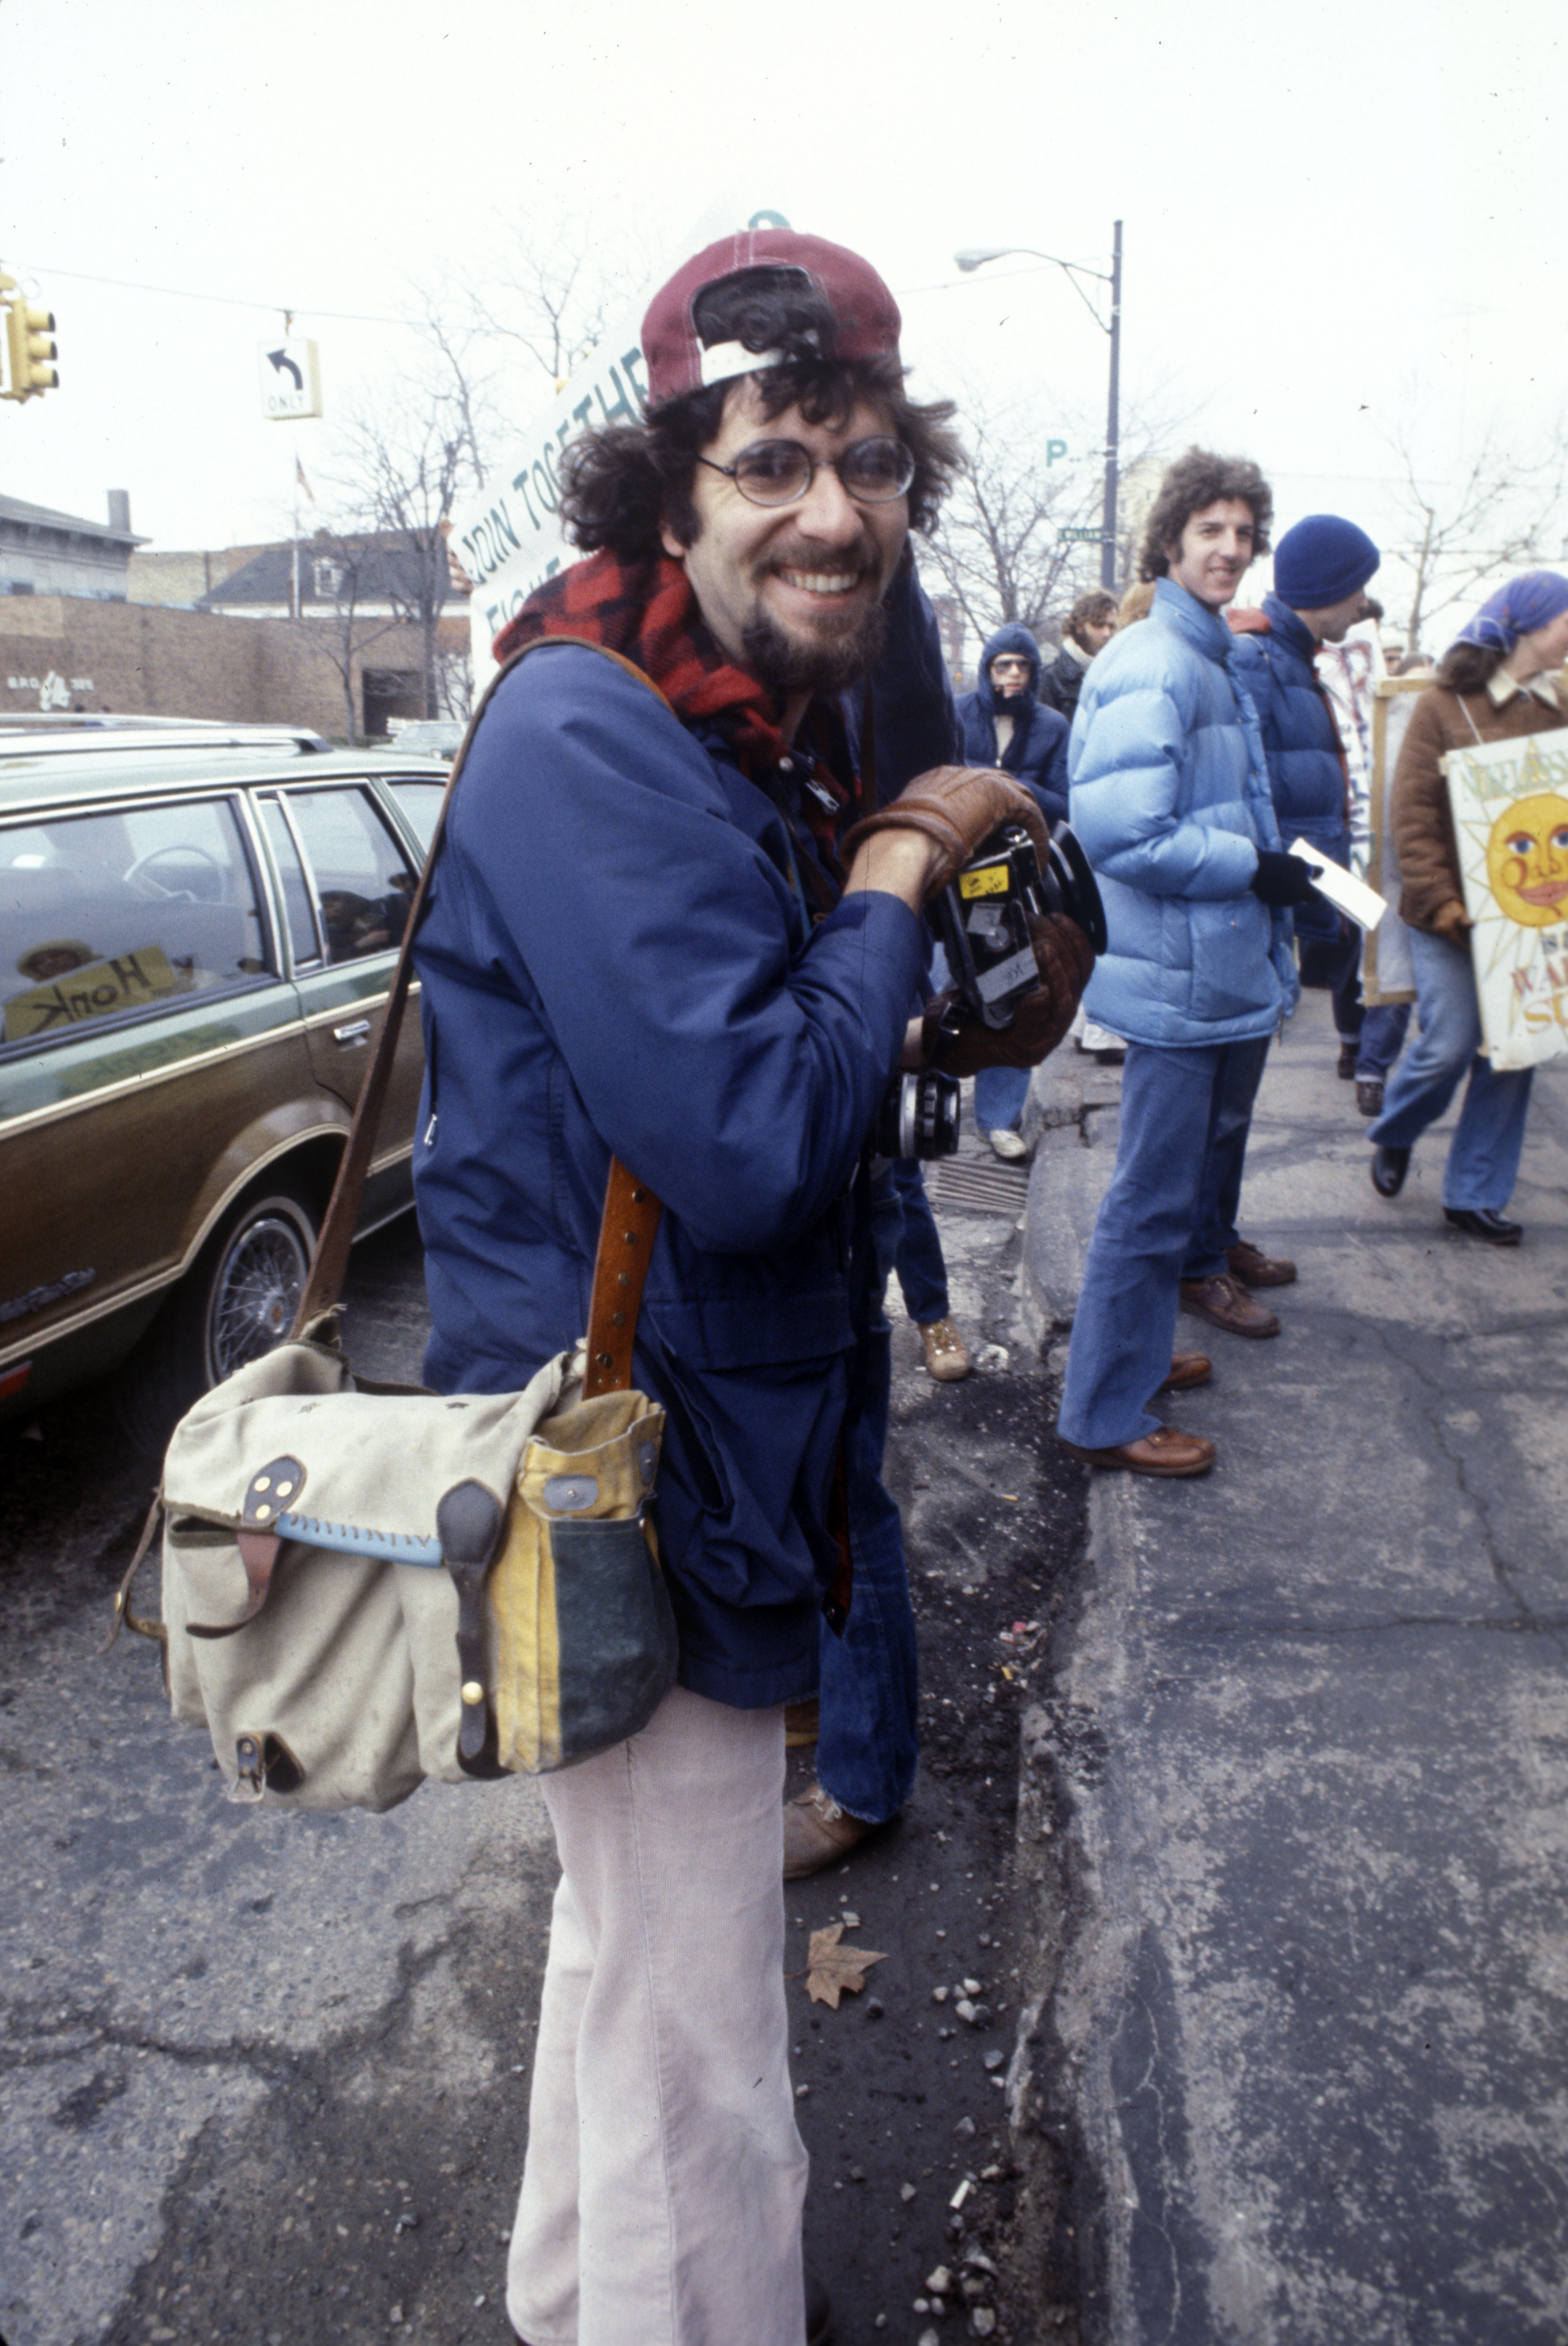 Andy Sacks at Anti-nuclear Protest Outside Detroit Edison Offices, c.1982 clone image